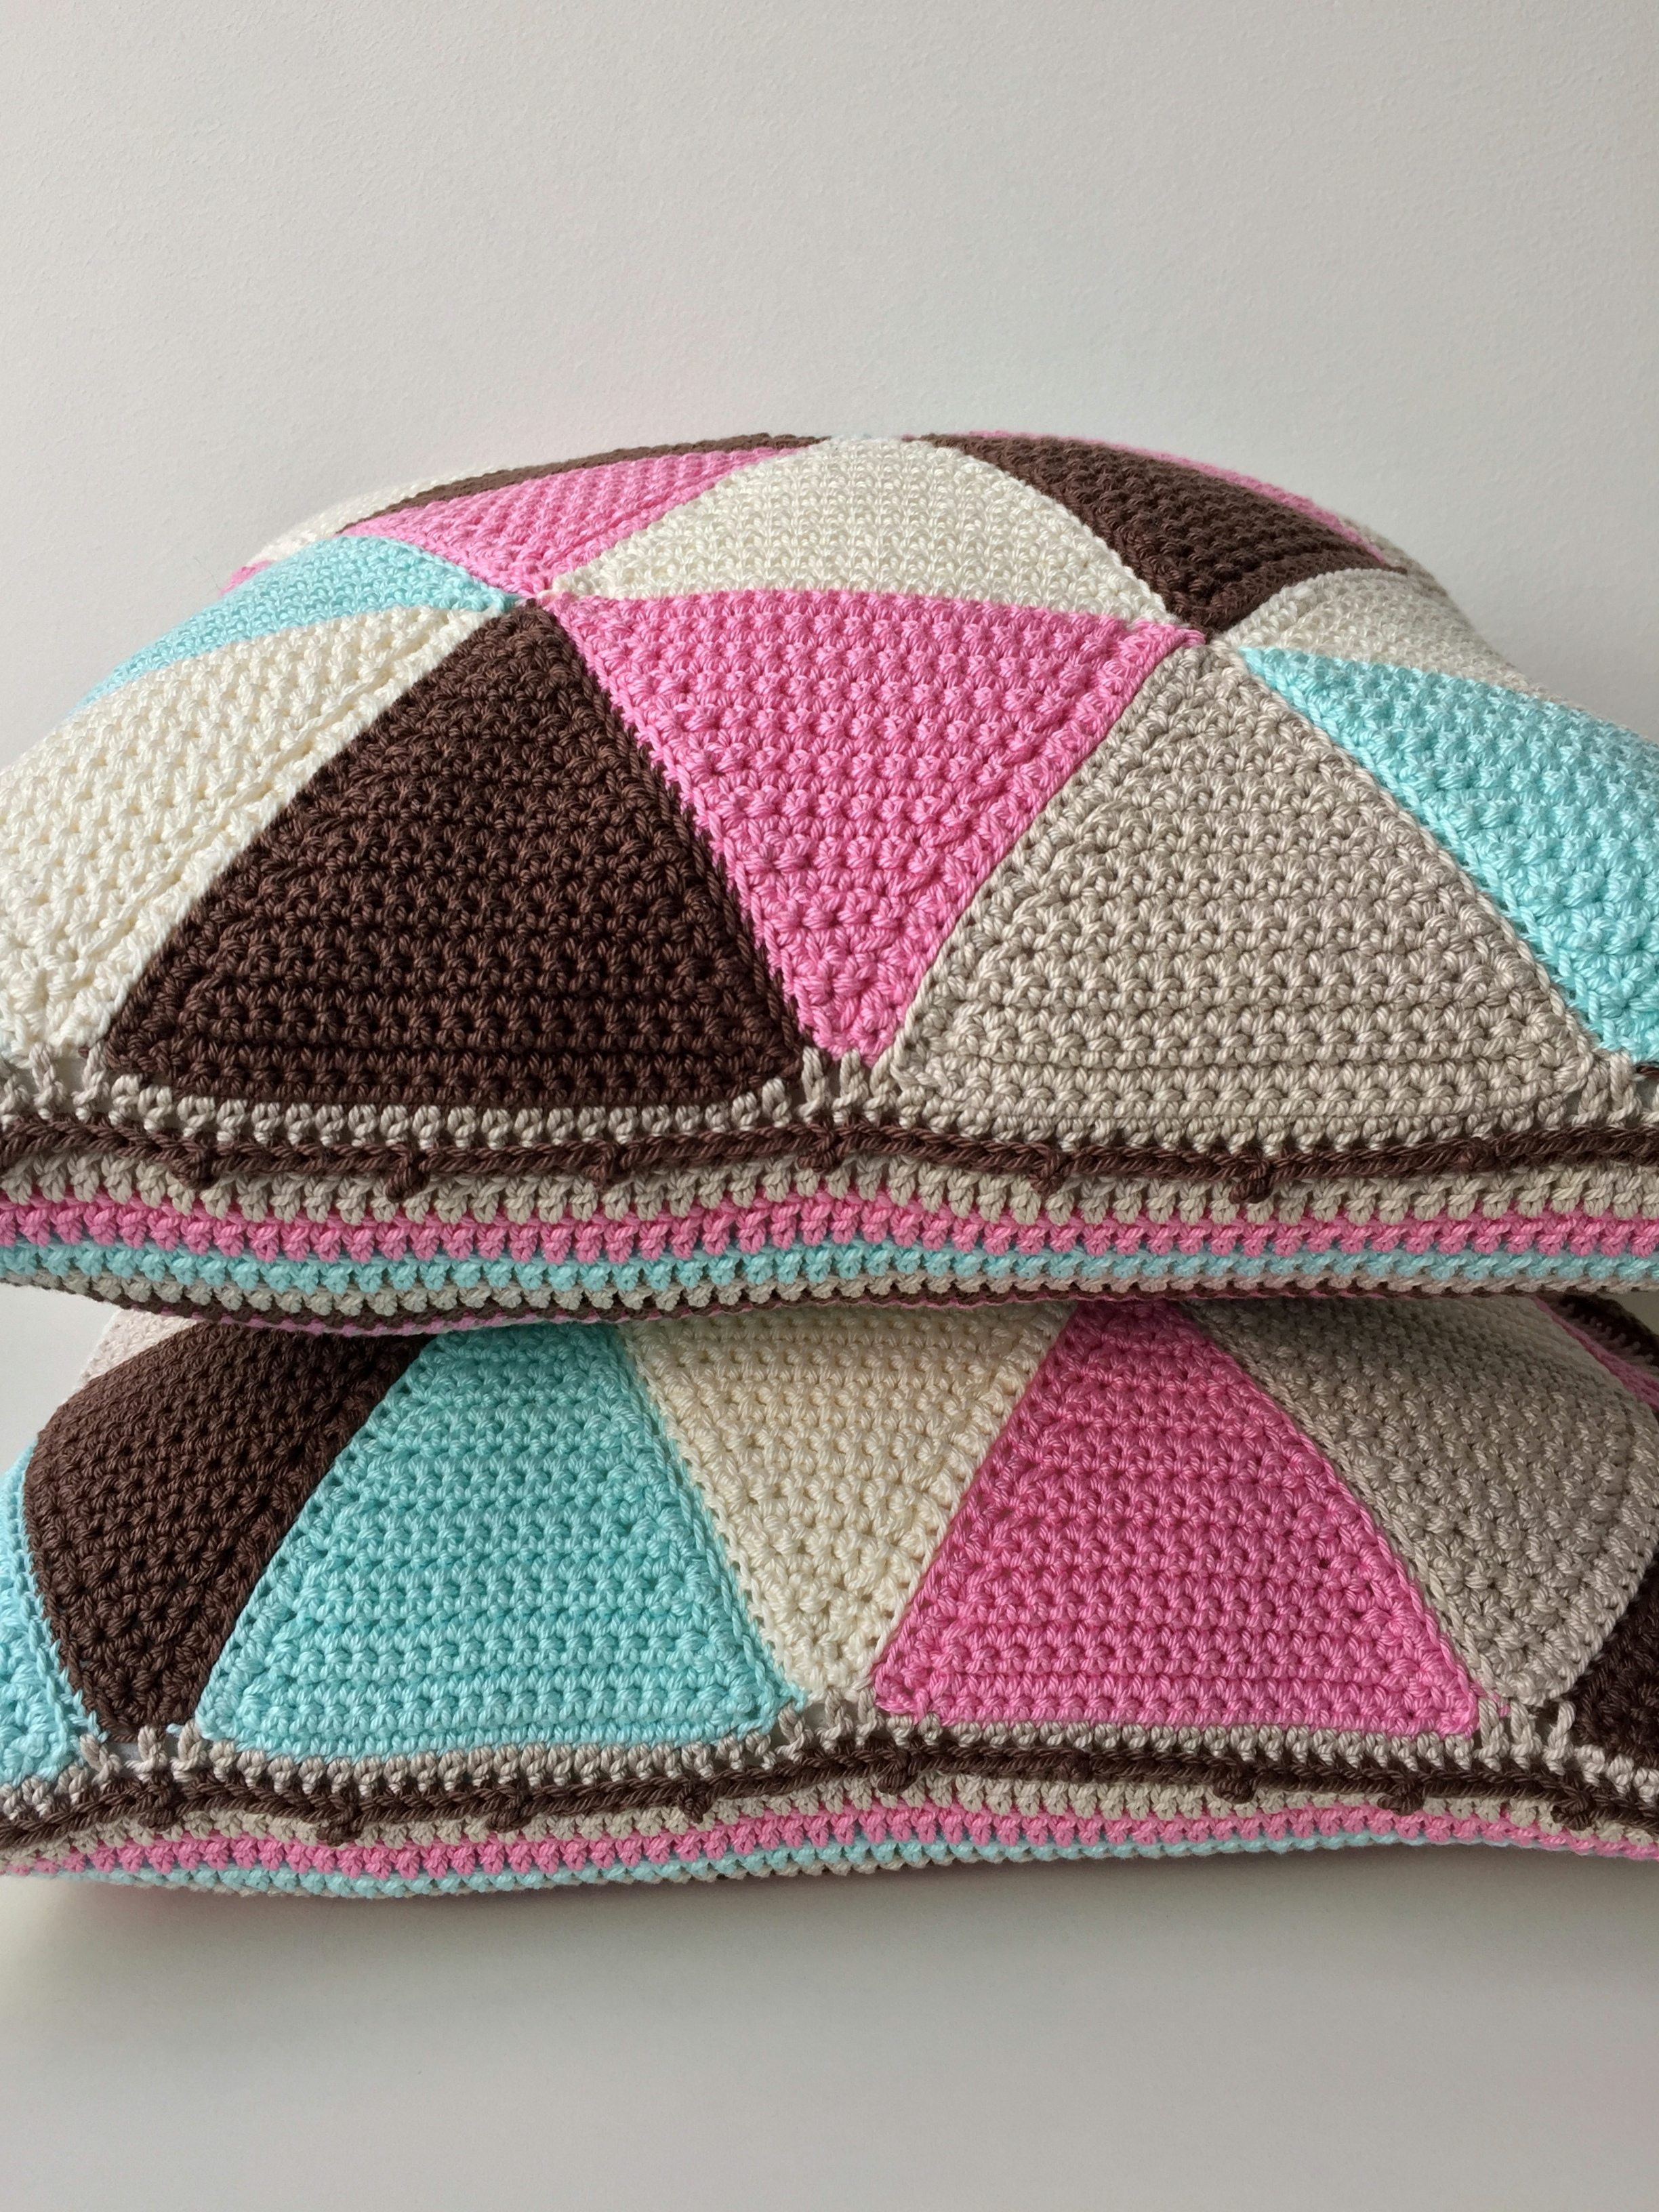 maRRose - CCC - The Gelato Gemini Triangle Cushions-31